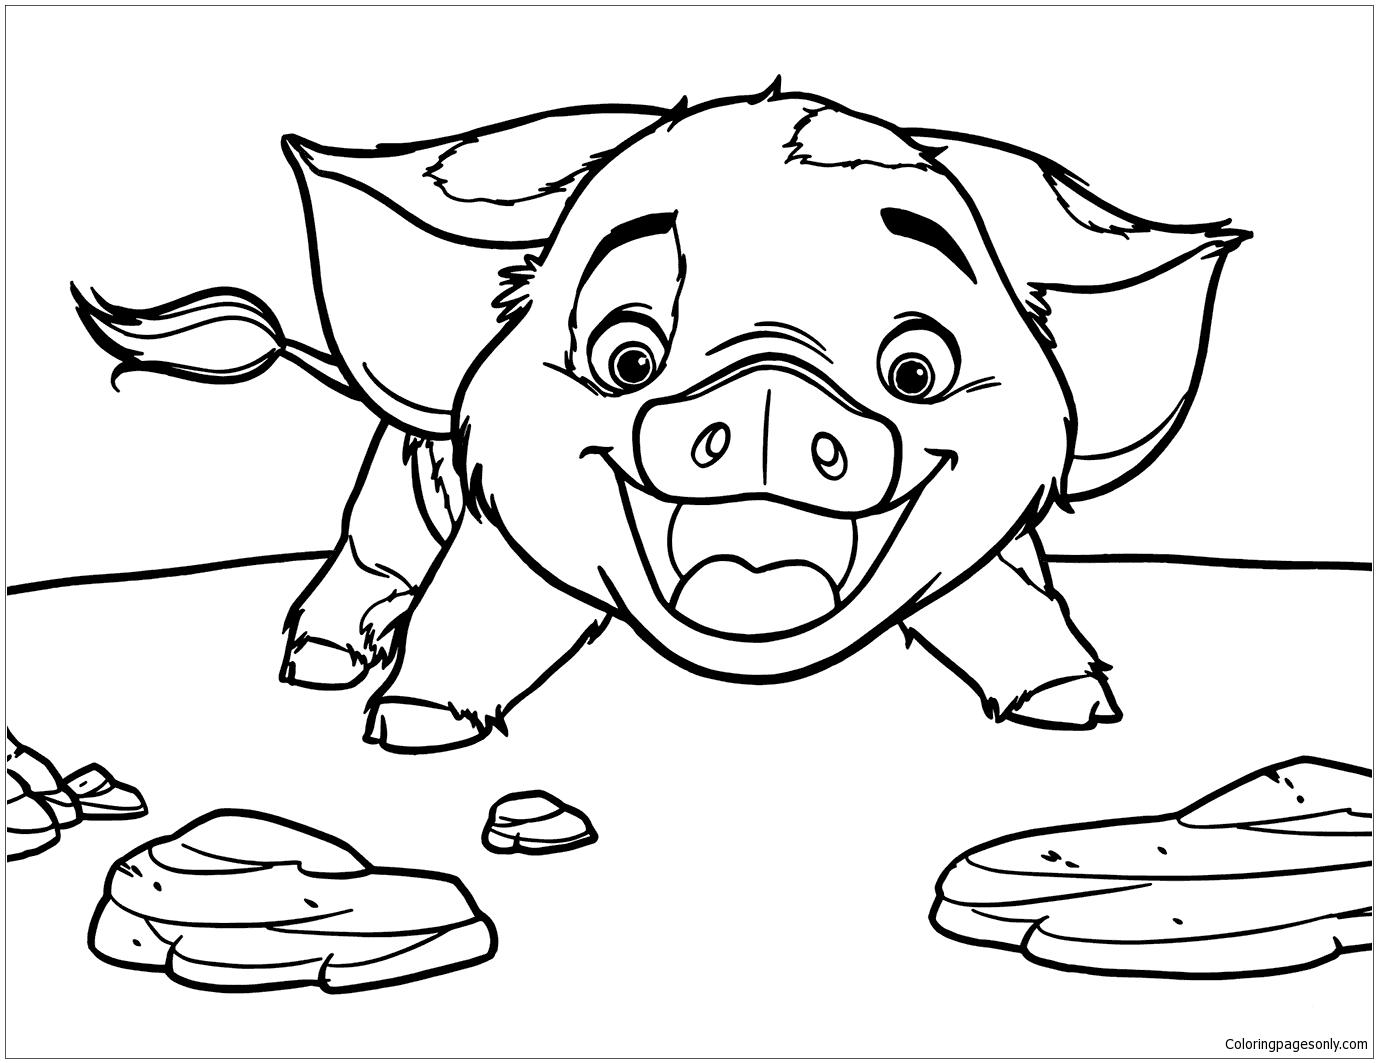 coloring page pig pig coloring page super simple coloring pig page